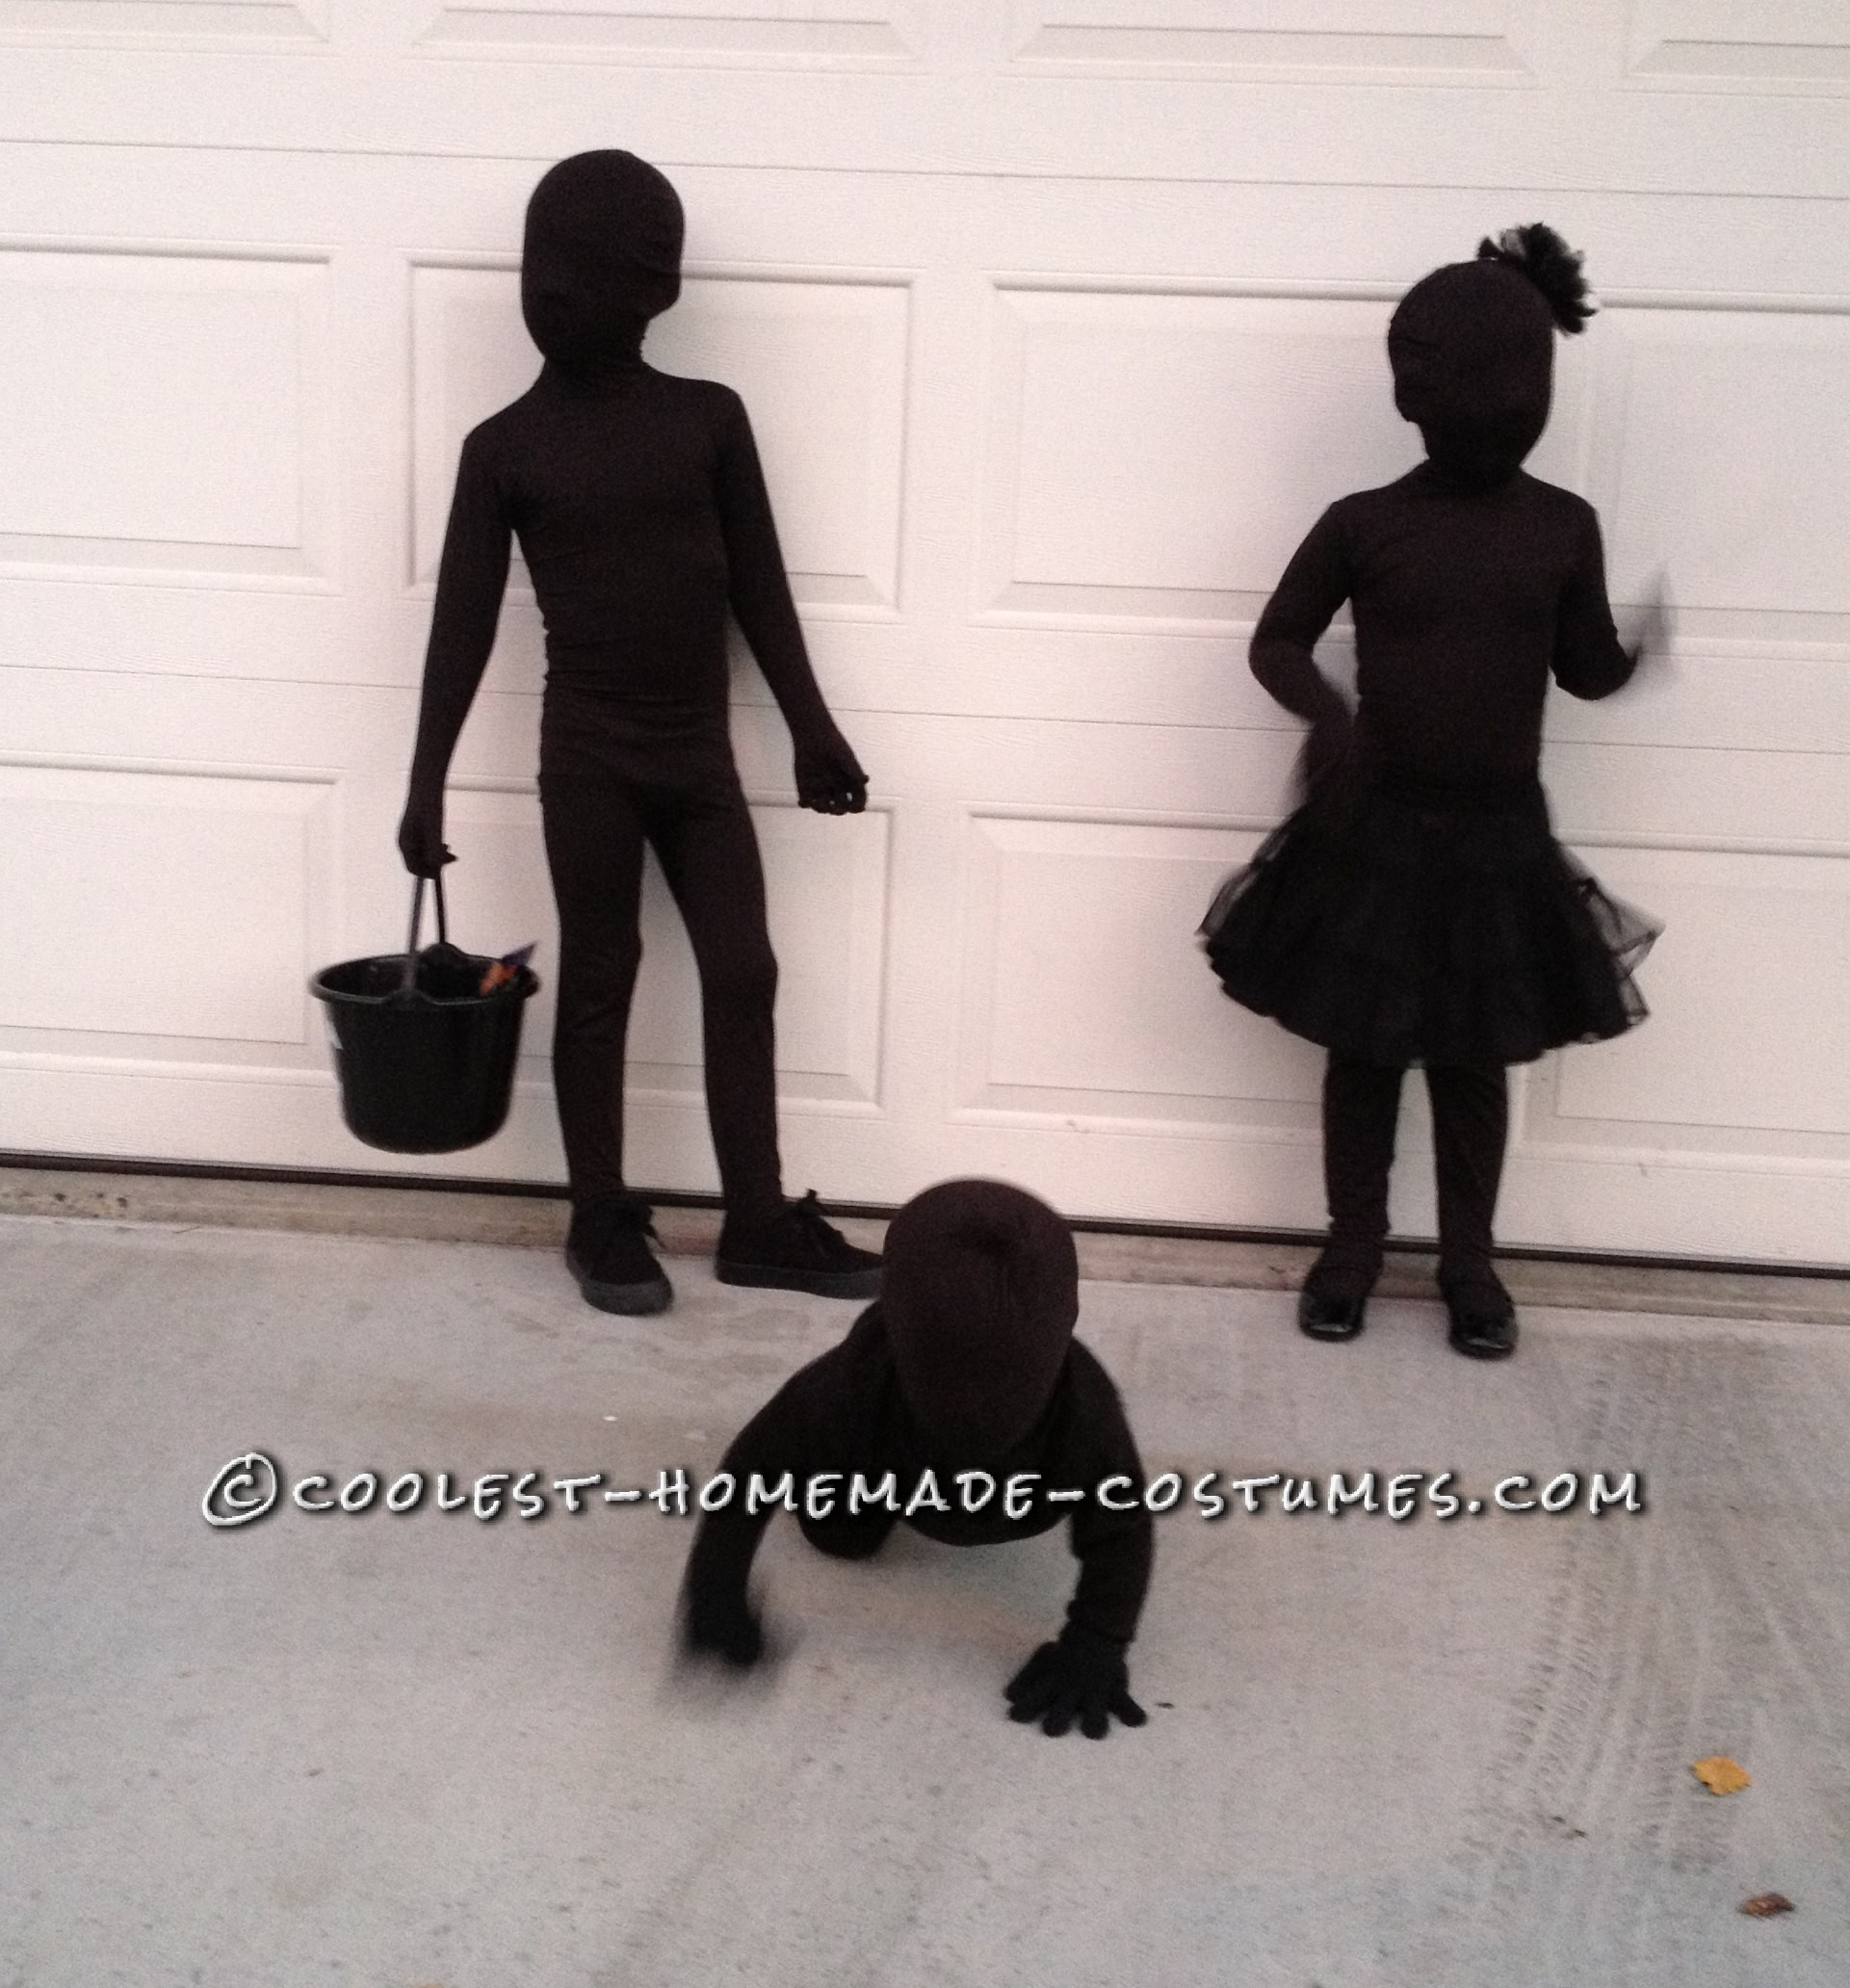 The Coolest and Easiest Costumes on Earth - Shadows!